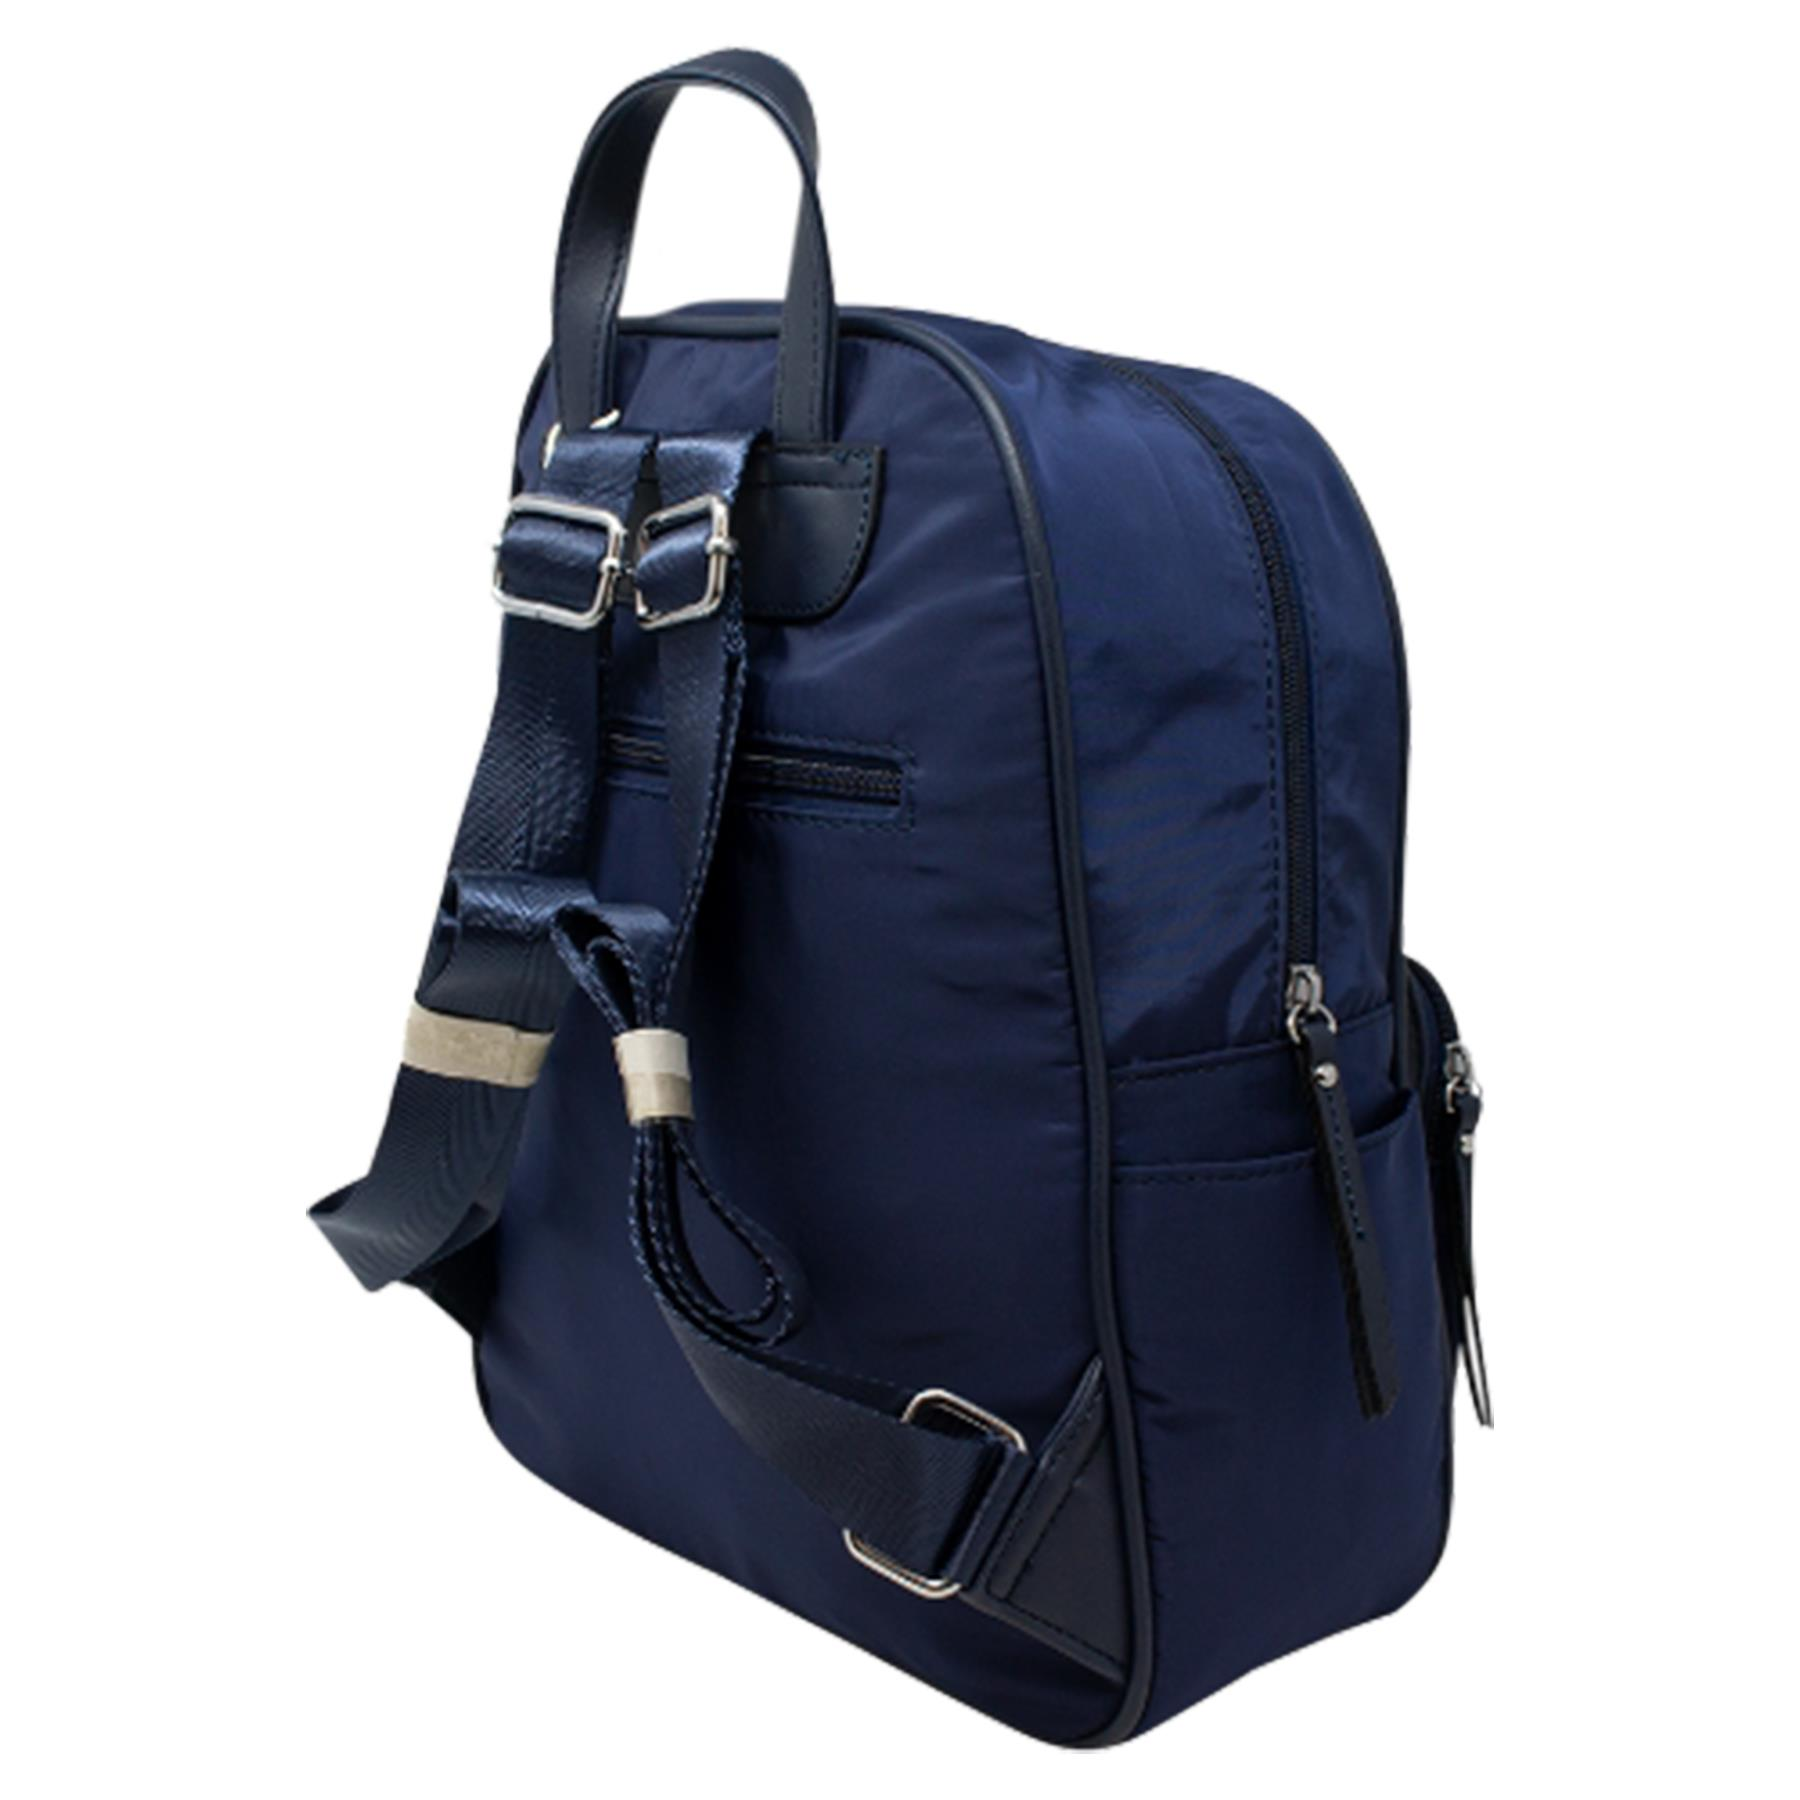 New-Unisex-Plain-Nylon-Showerproof-School-College-Backpack-Rucksack thumbnail 10